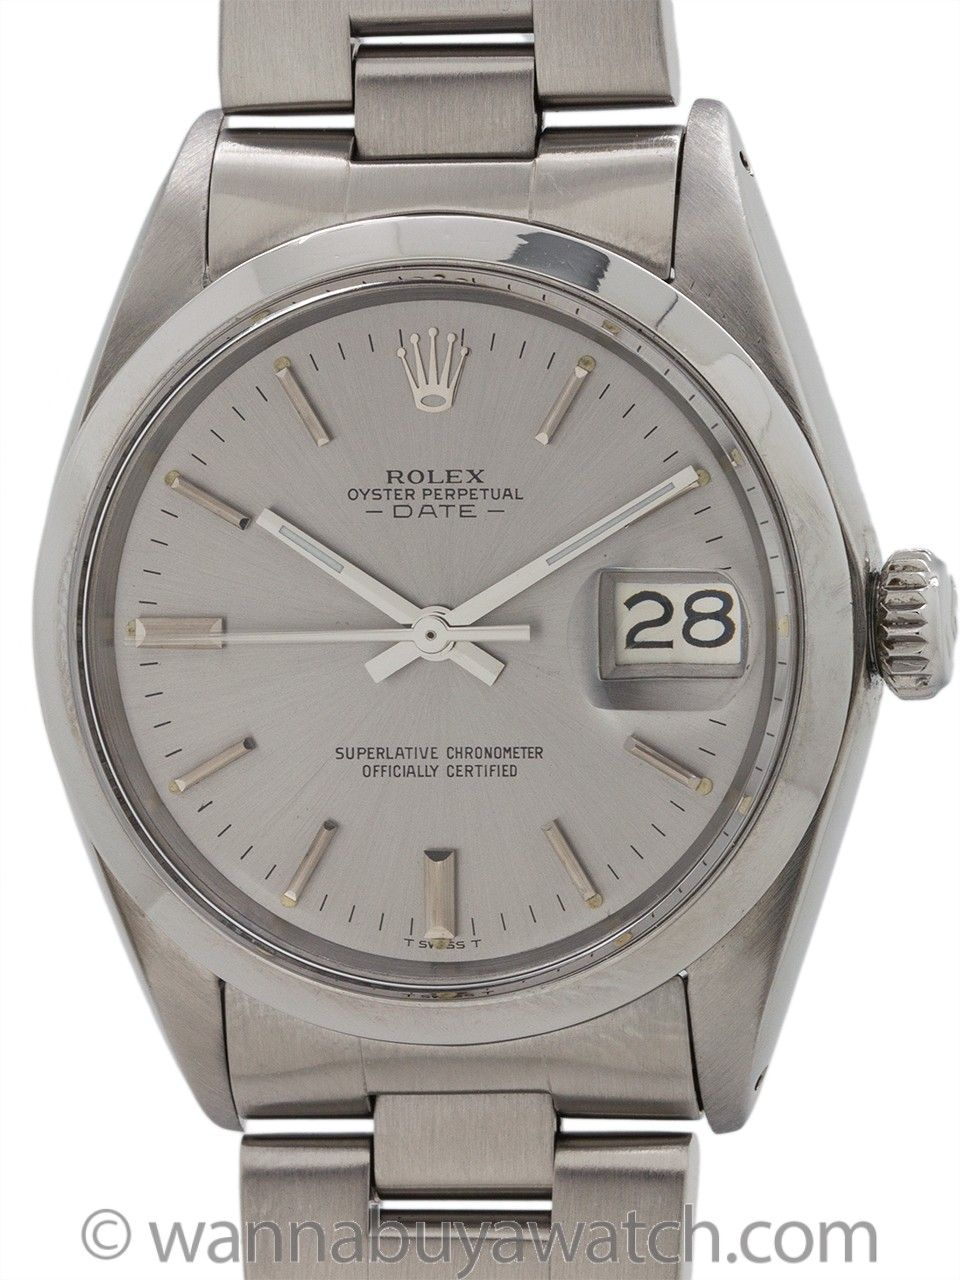 c97f59d734f Rolex ref 1500 Oyster Perpetual Date circa 1969 - Vintage man's Rolex  Stainless Steel Oyster Perpetual Date ref 1500 serial # 2.3 million circa  1969.